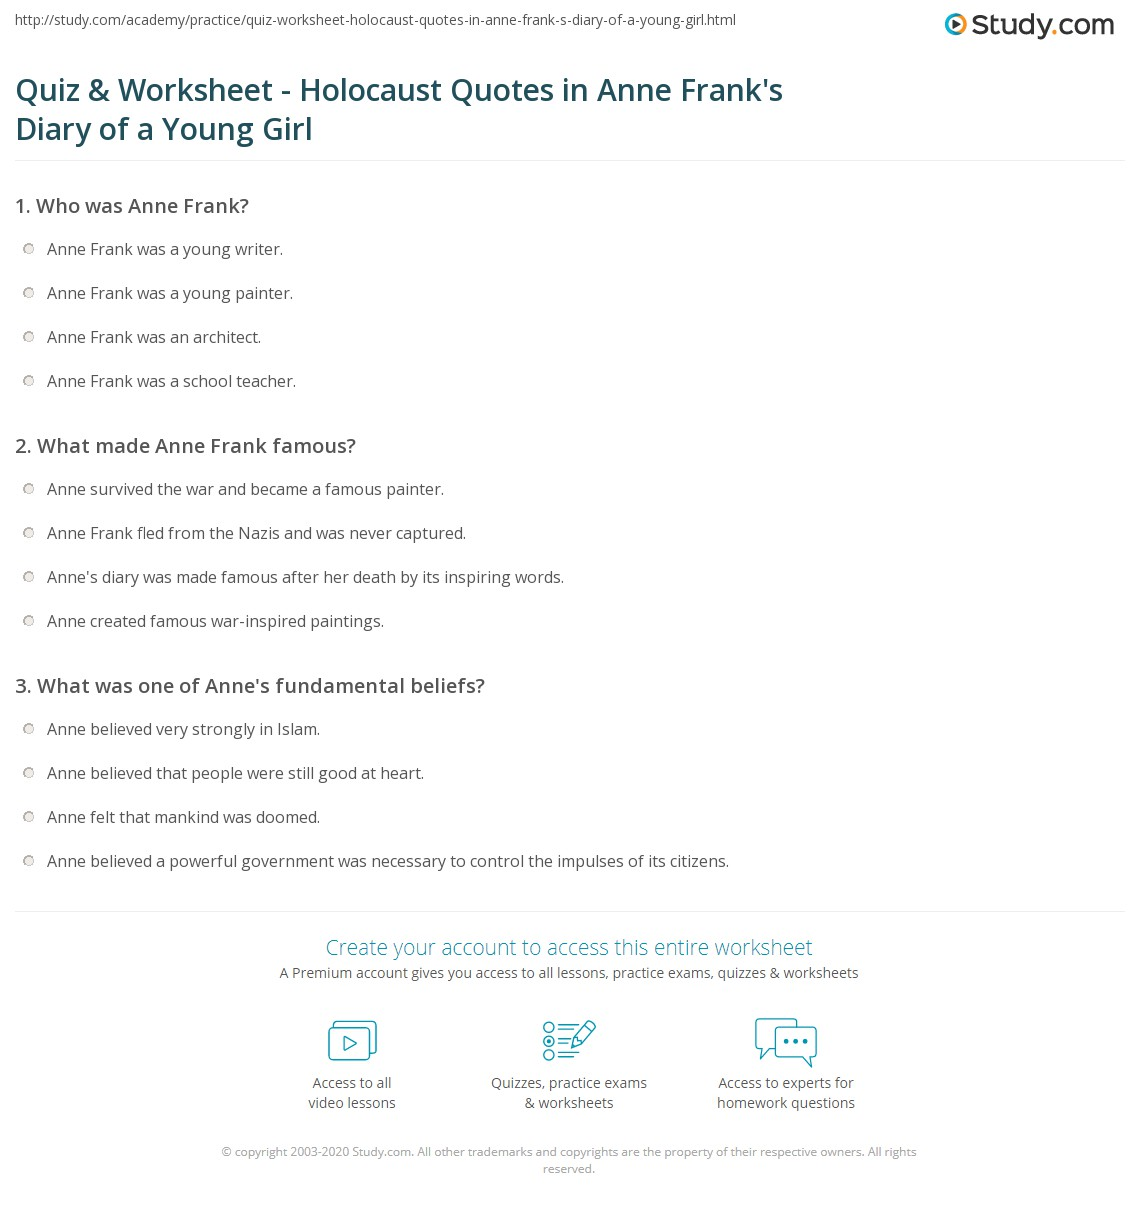 quiz worksheet holocaust quotes in anne frank s diary of a print holocaust quotes in anne frank s diary of a young girl worksheet